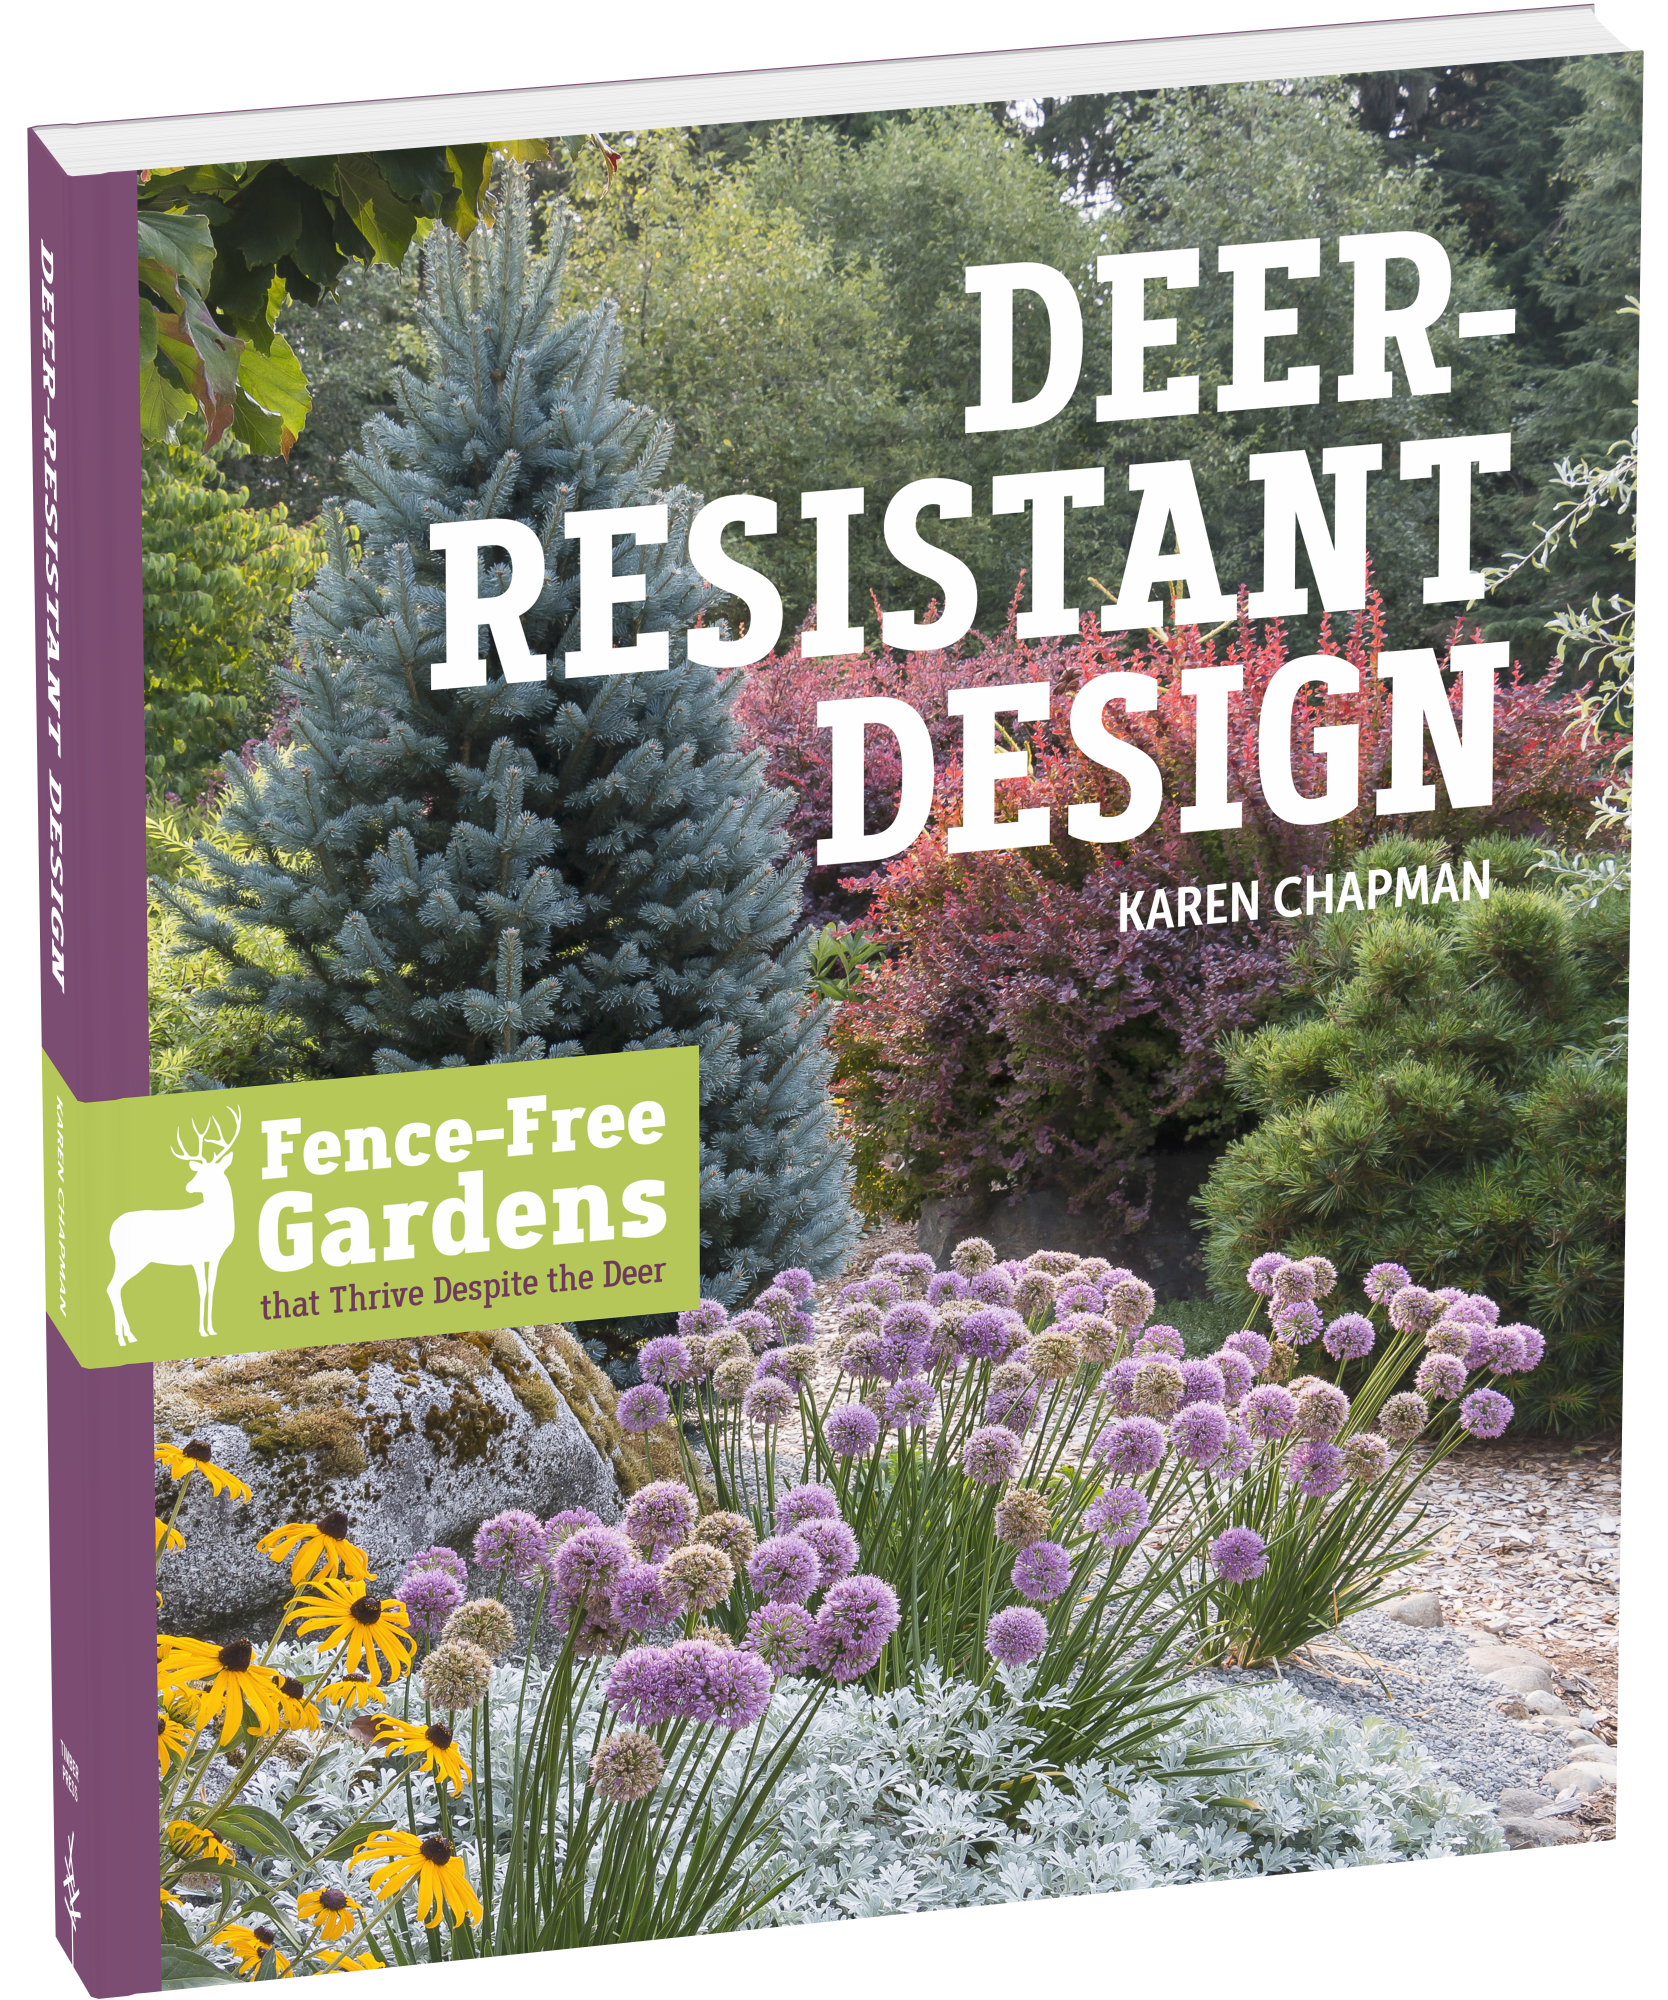 Deer-Resistant Design on purple perennials zone 6, deer resistant perennials zone 9, best perennials for zone 6, red perennials zone 6, deer resistant plants, ground cover perennials zone 6, long blooming perennials zone 6, summer blooming perennials zone 6, fall blooming perennials zone 6, deer and rabbit resistant perennials zone 4, sun hardy perennials zone 6, small perennials zone 6, deer resistant shrubs zone 3,